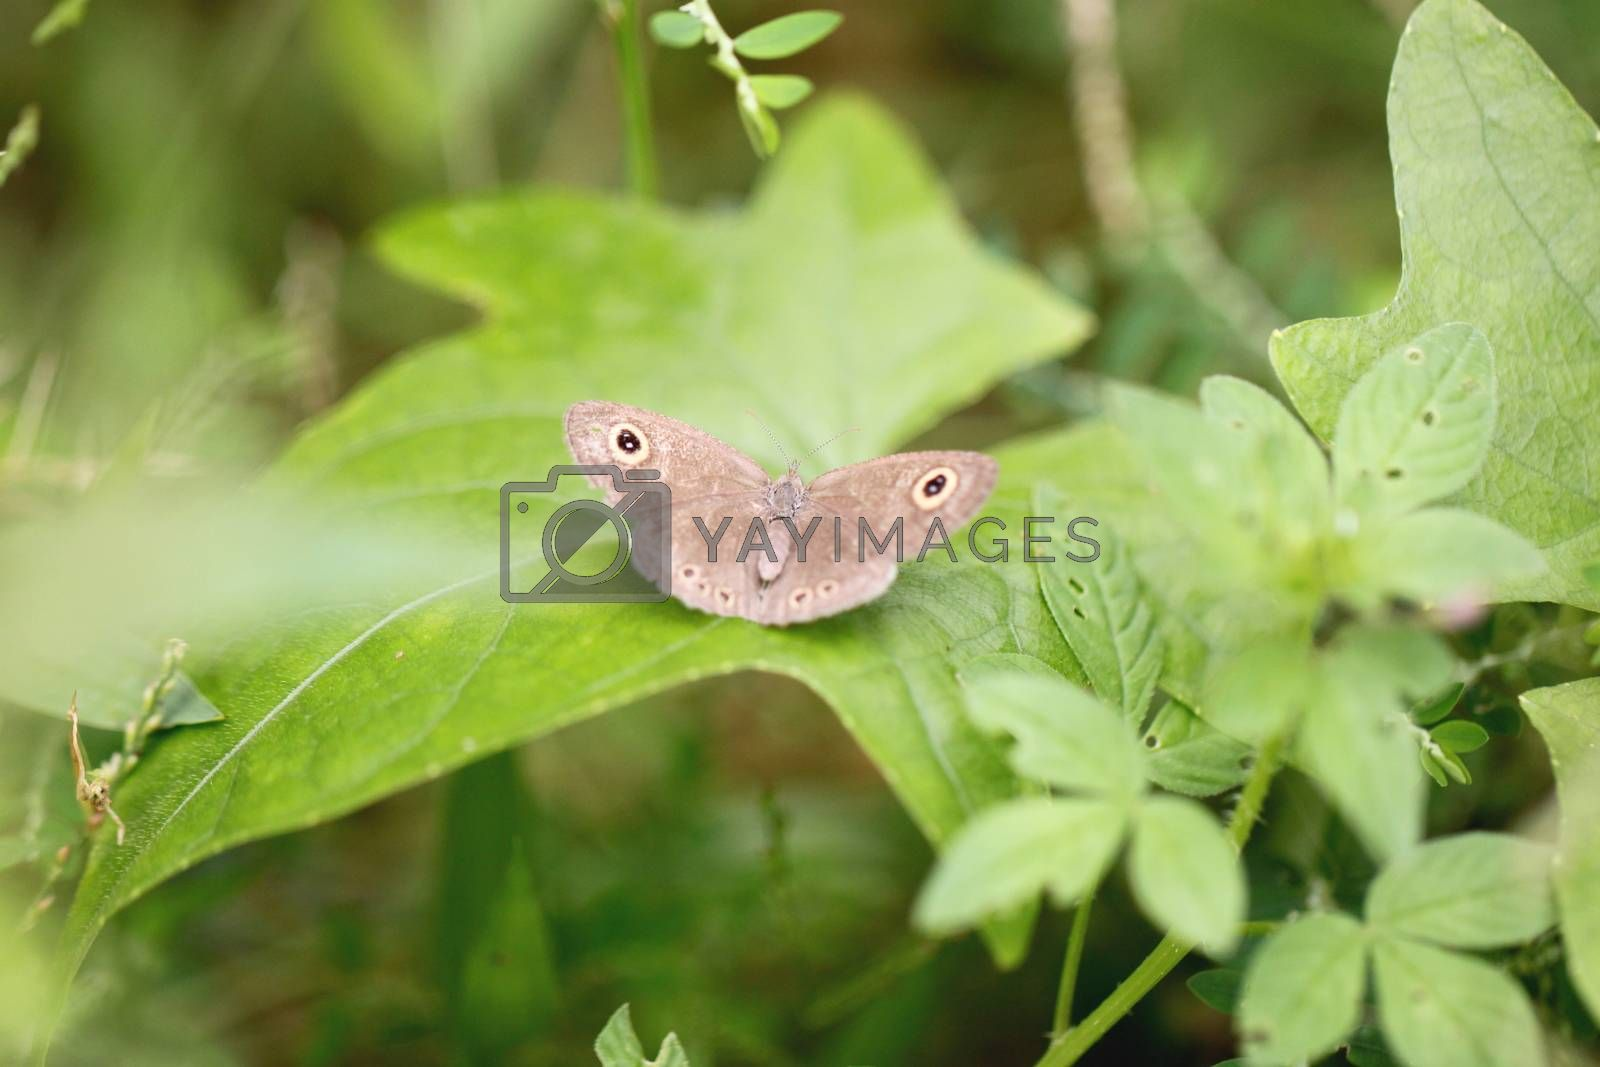 Brown butterfly on green leaves in the garden.